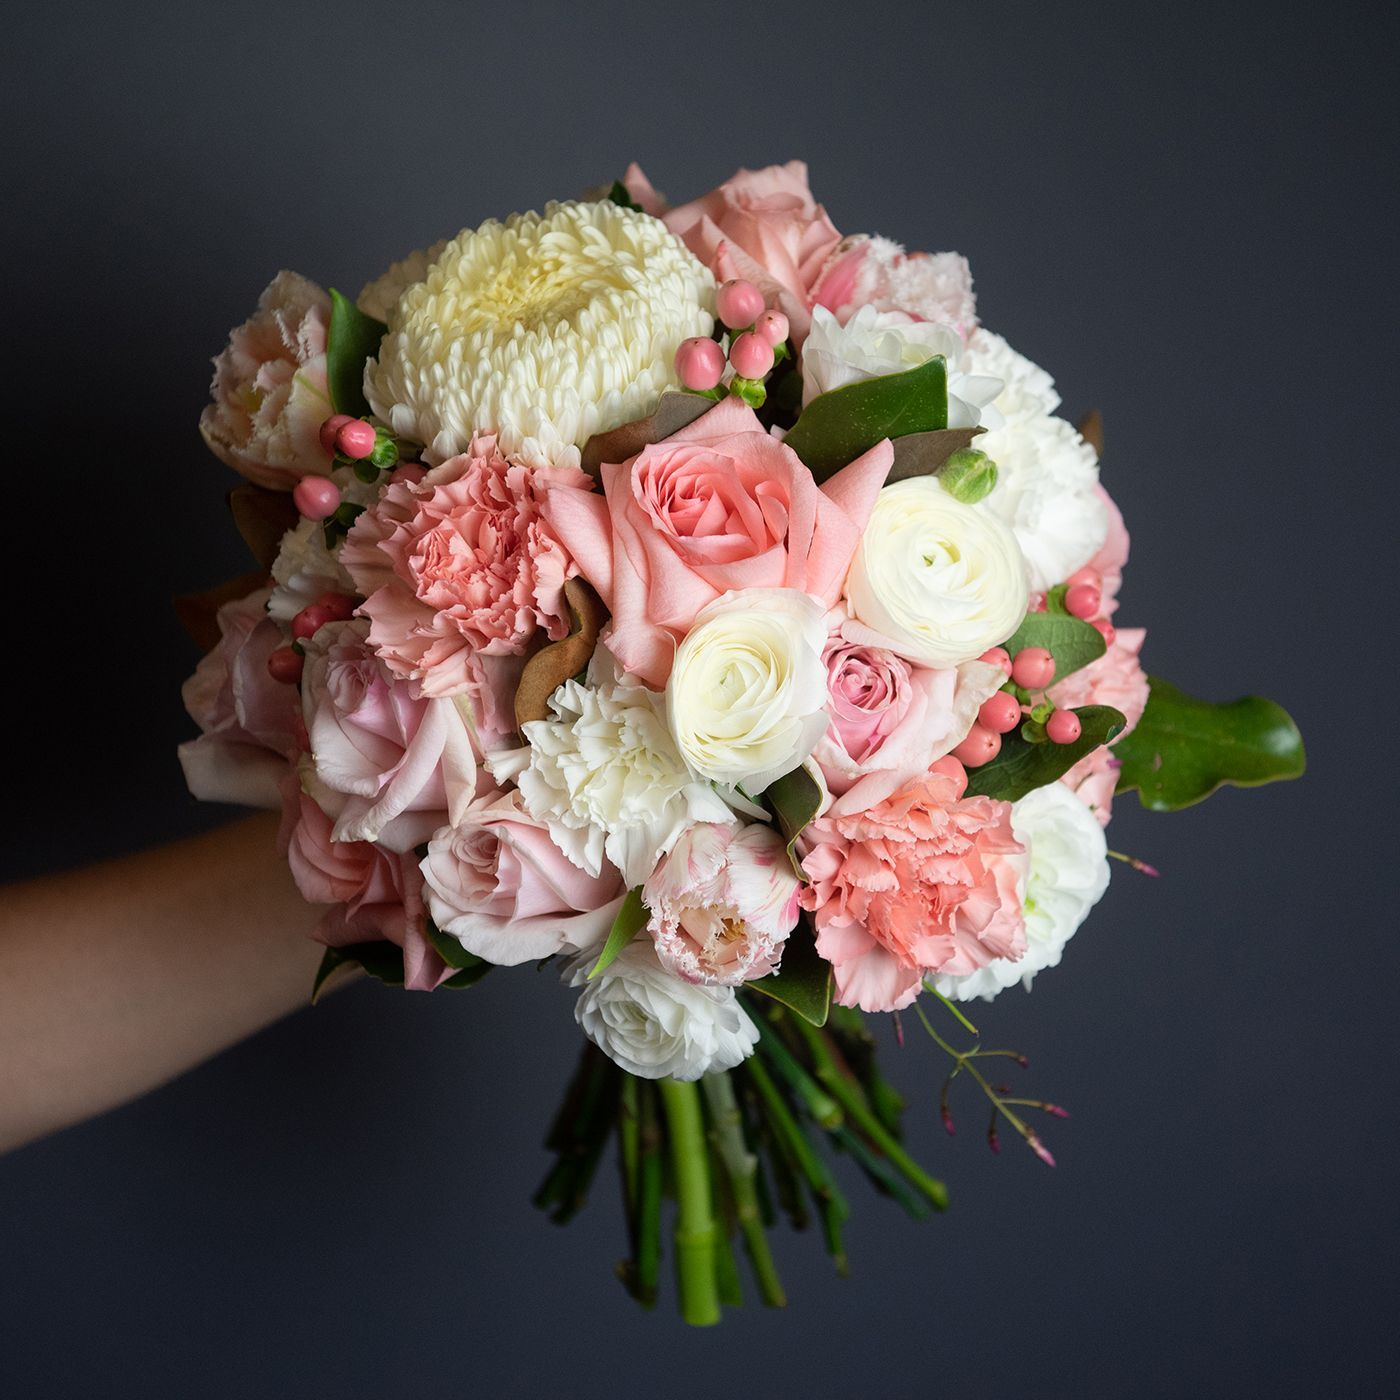 Rebecca S Oh So Sweet Bouquet Of Soft Pinks Has Us Day Dreaming Weddingwednesday Flower Bouquet Wedding Wedding Flower Packages Diy Wedding Flowers